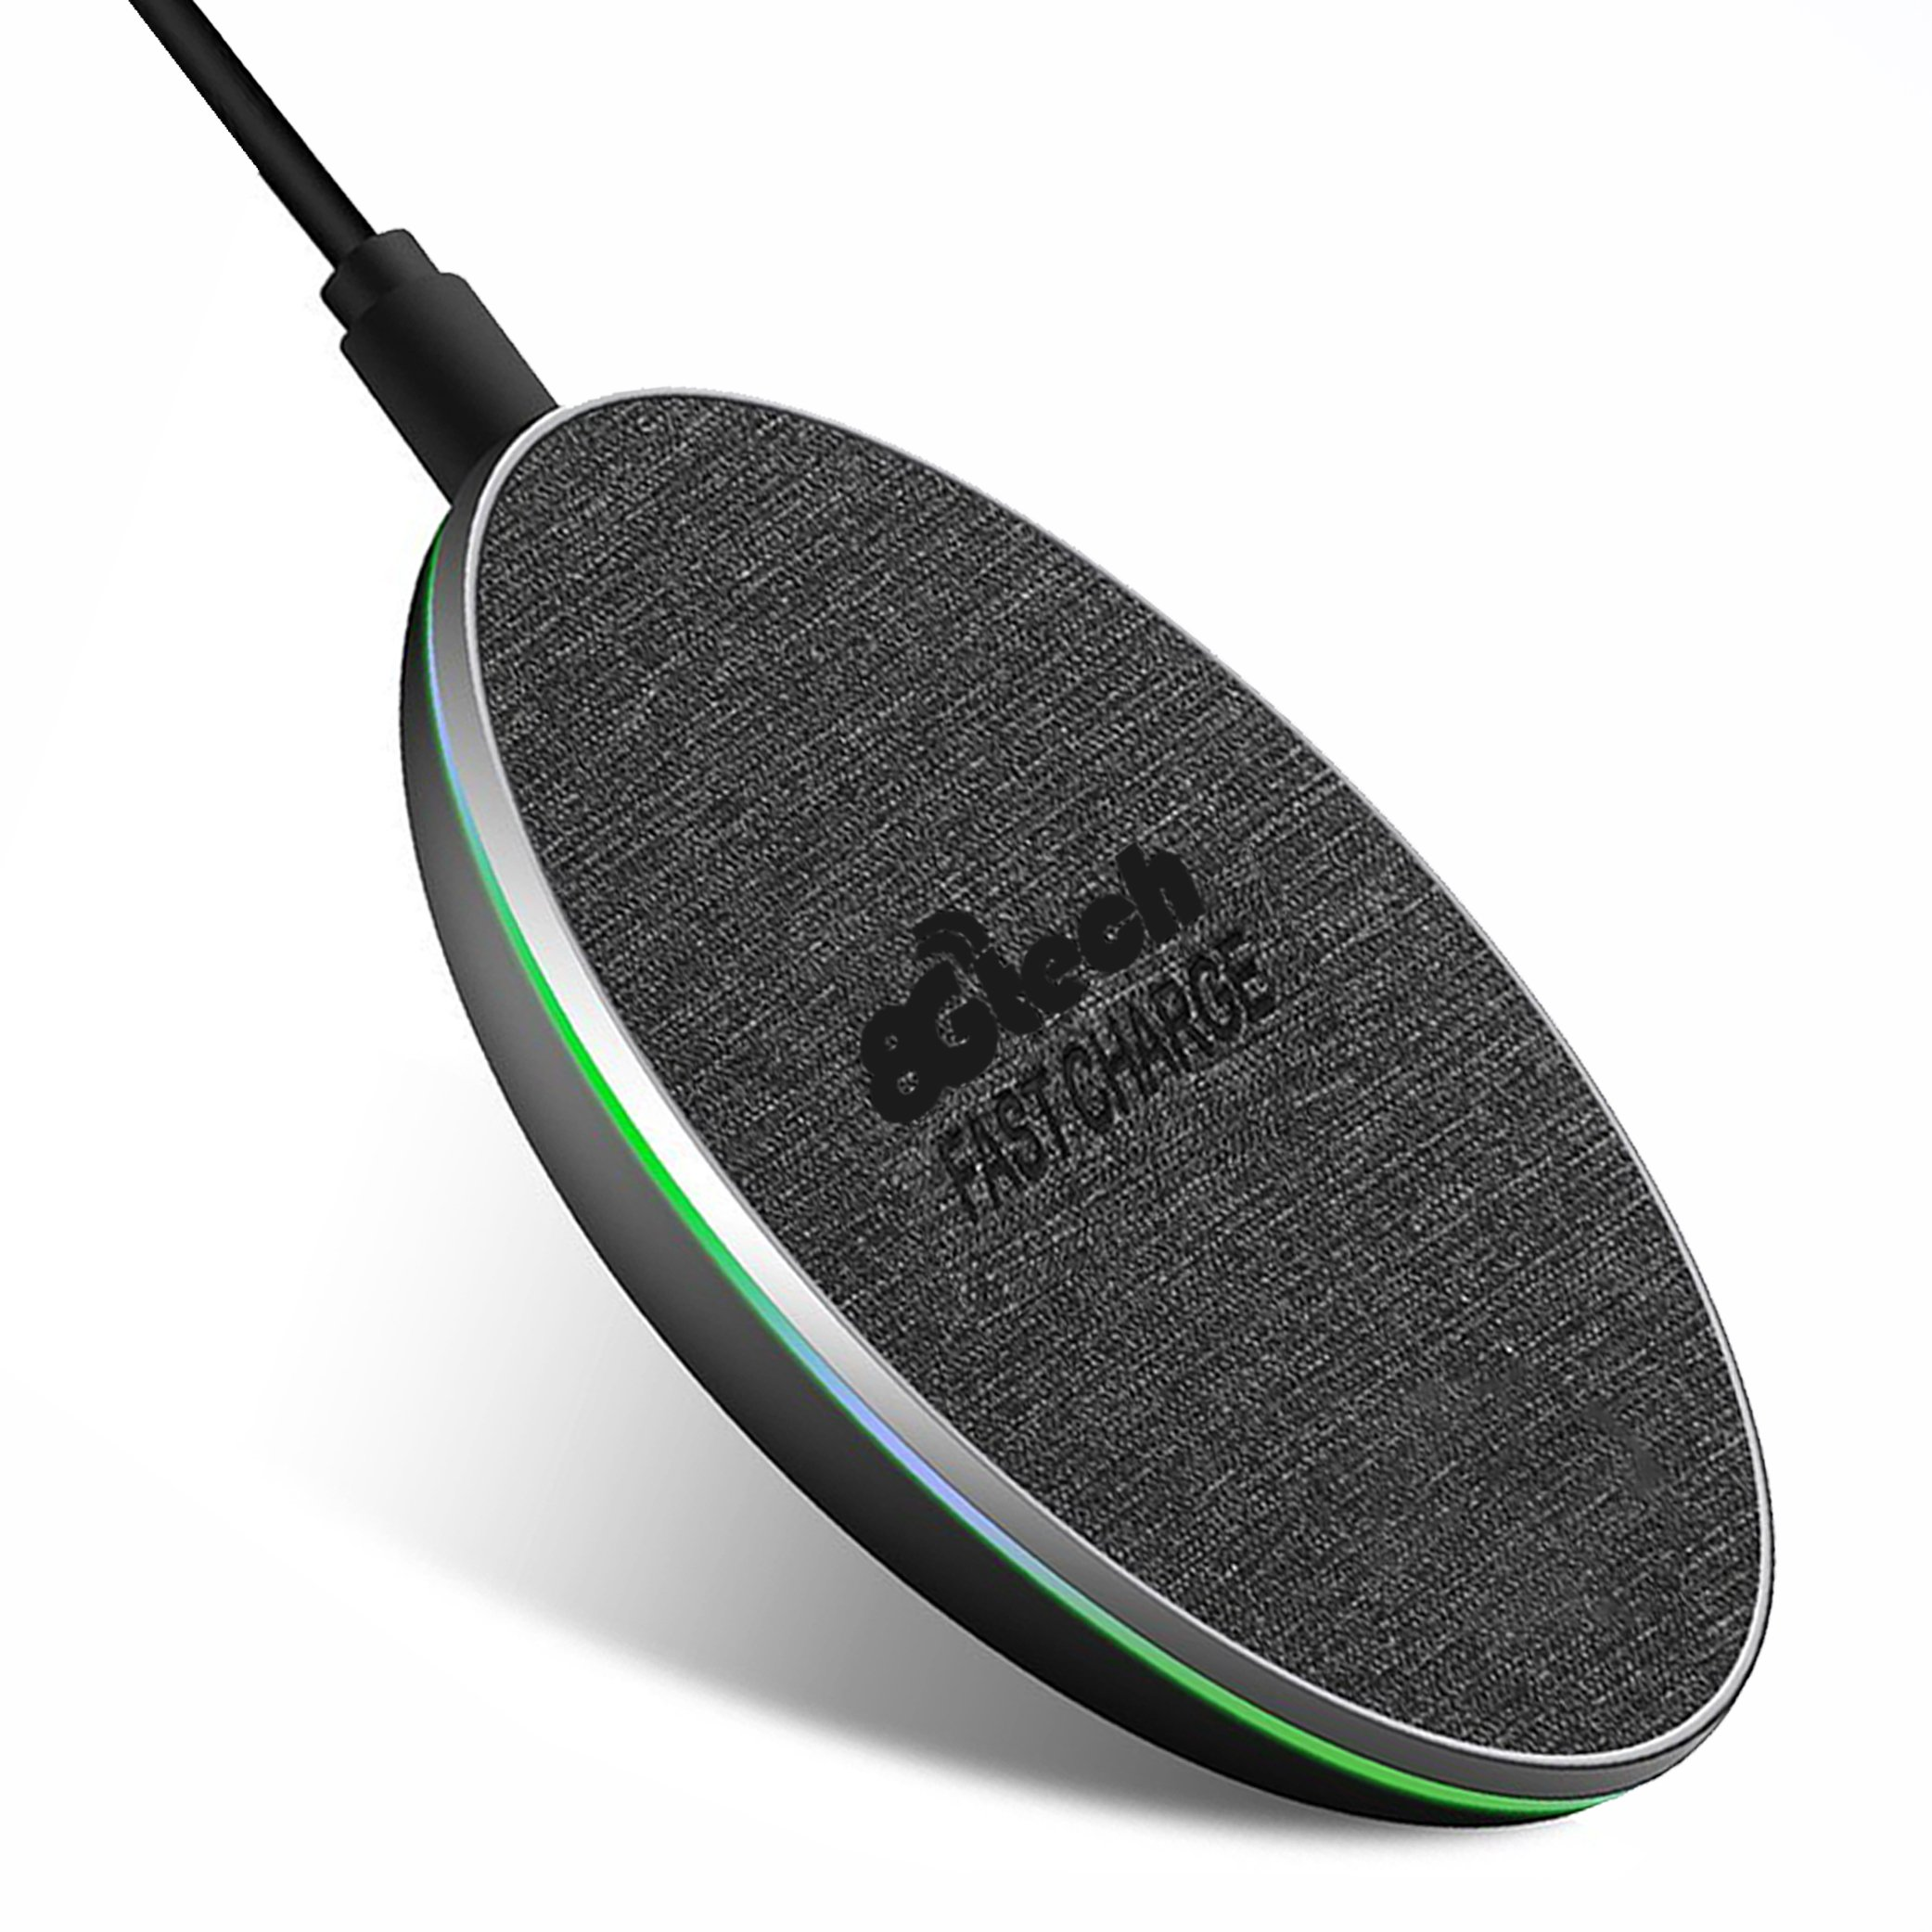 Fast Wireless Charger, (Compatible brand)iPhone X wireless charger, Fast Wireless Charging Pad for (Compatible brand)Samsung Galaxy Note 8/5 S8/S8 Plus S7/S7 Edge S6 Plus (No charger adapter) (Black)